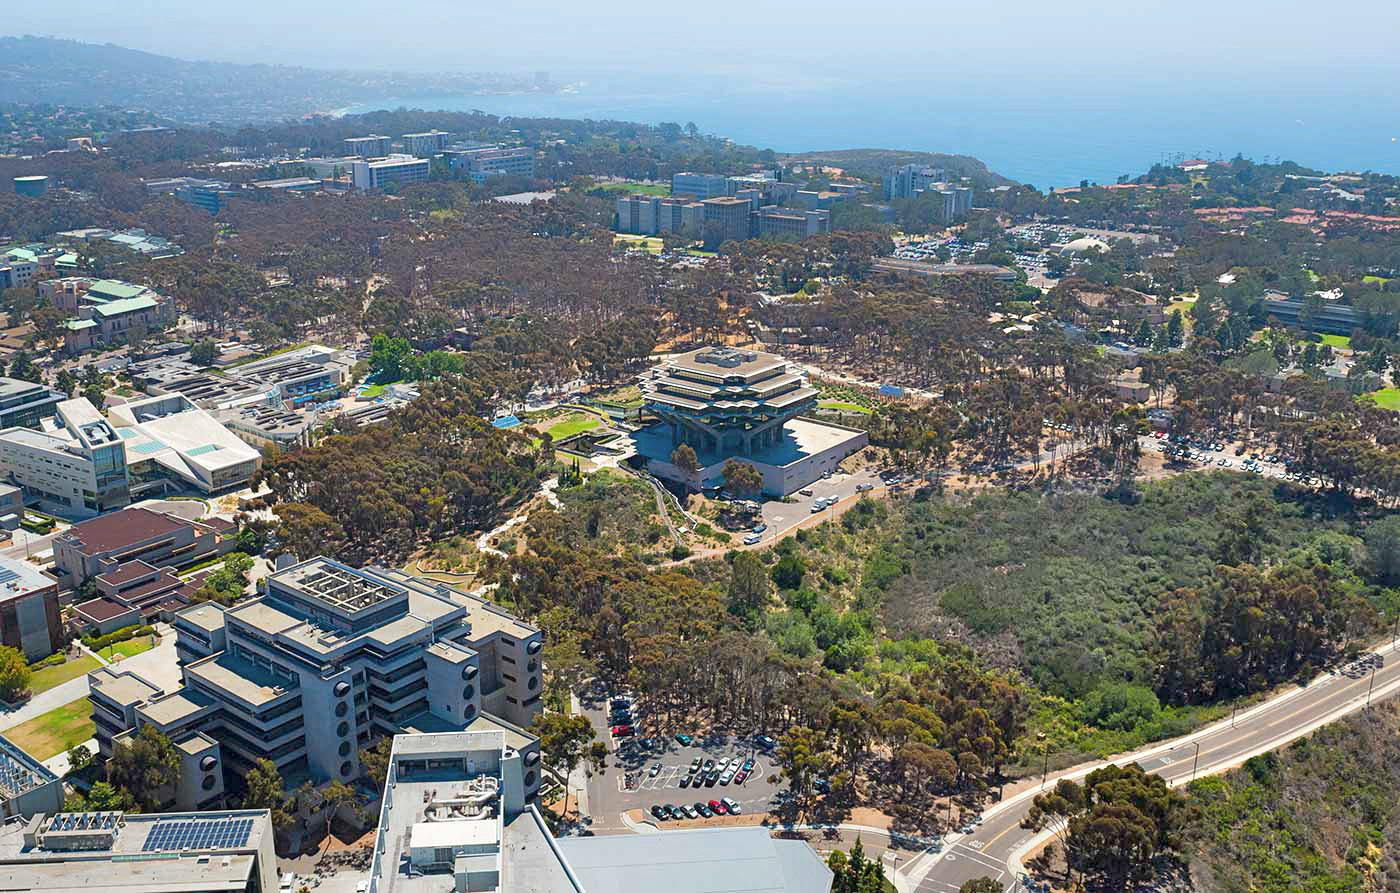 Campus of UC San Diego